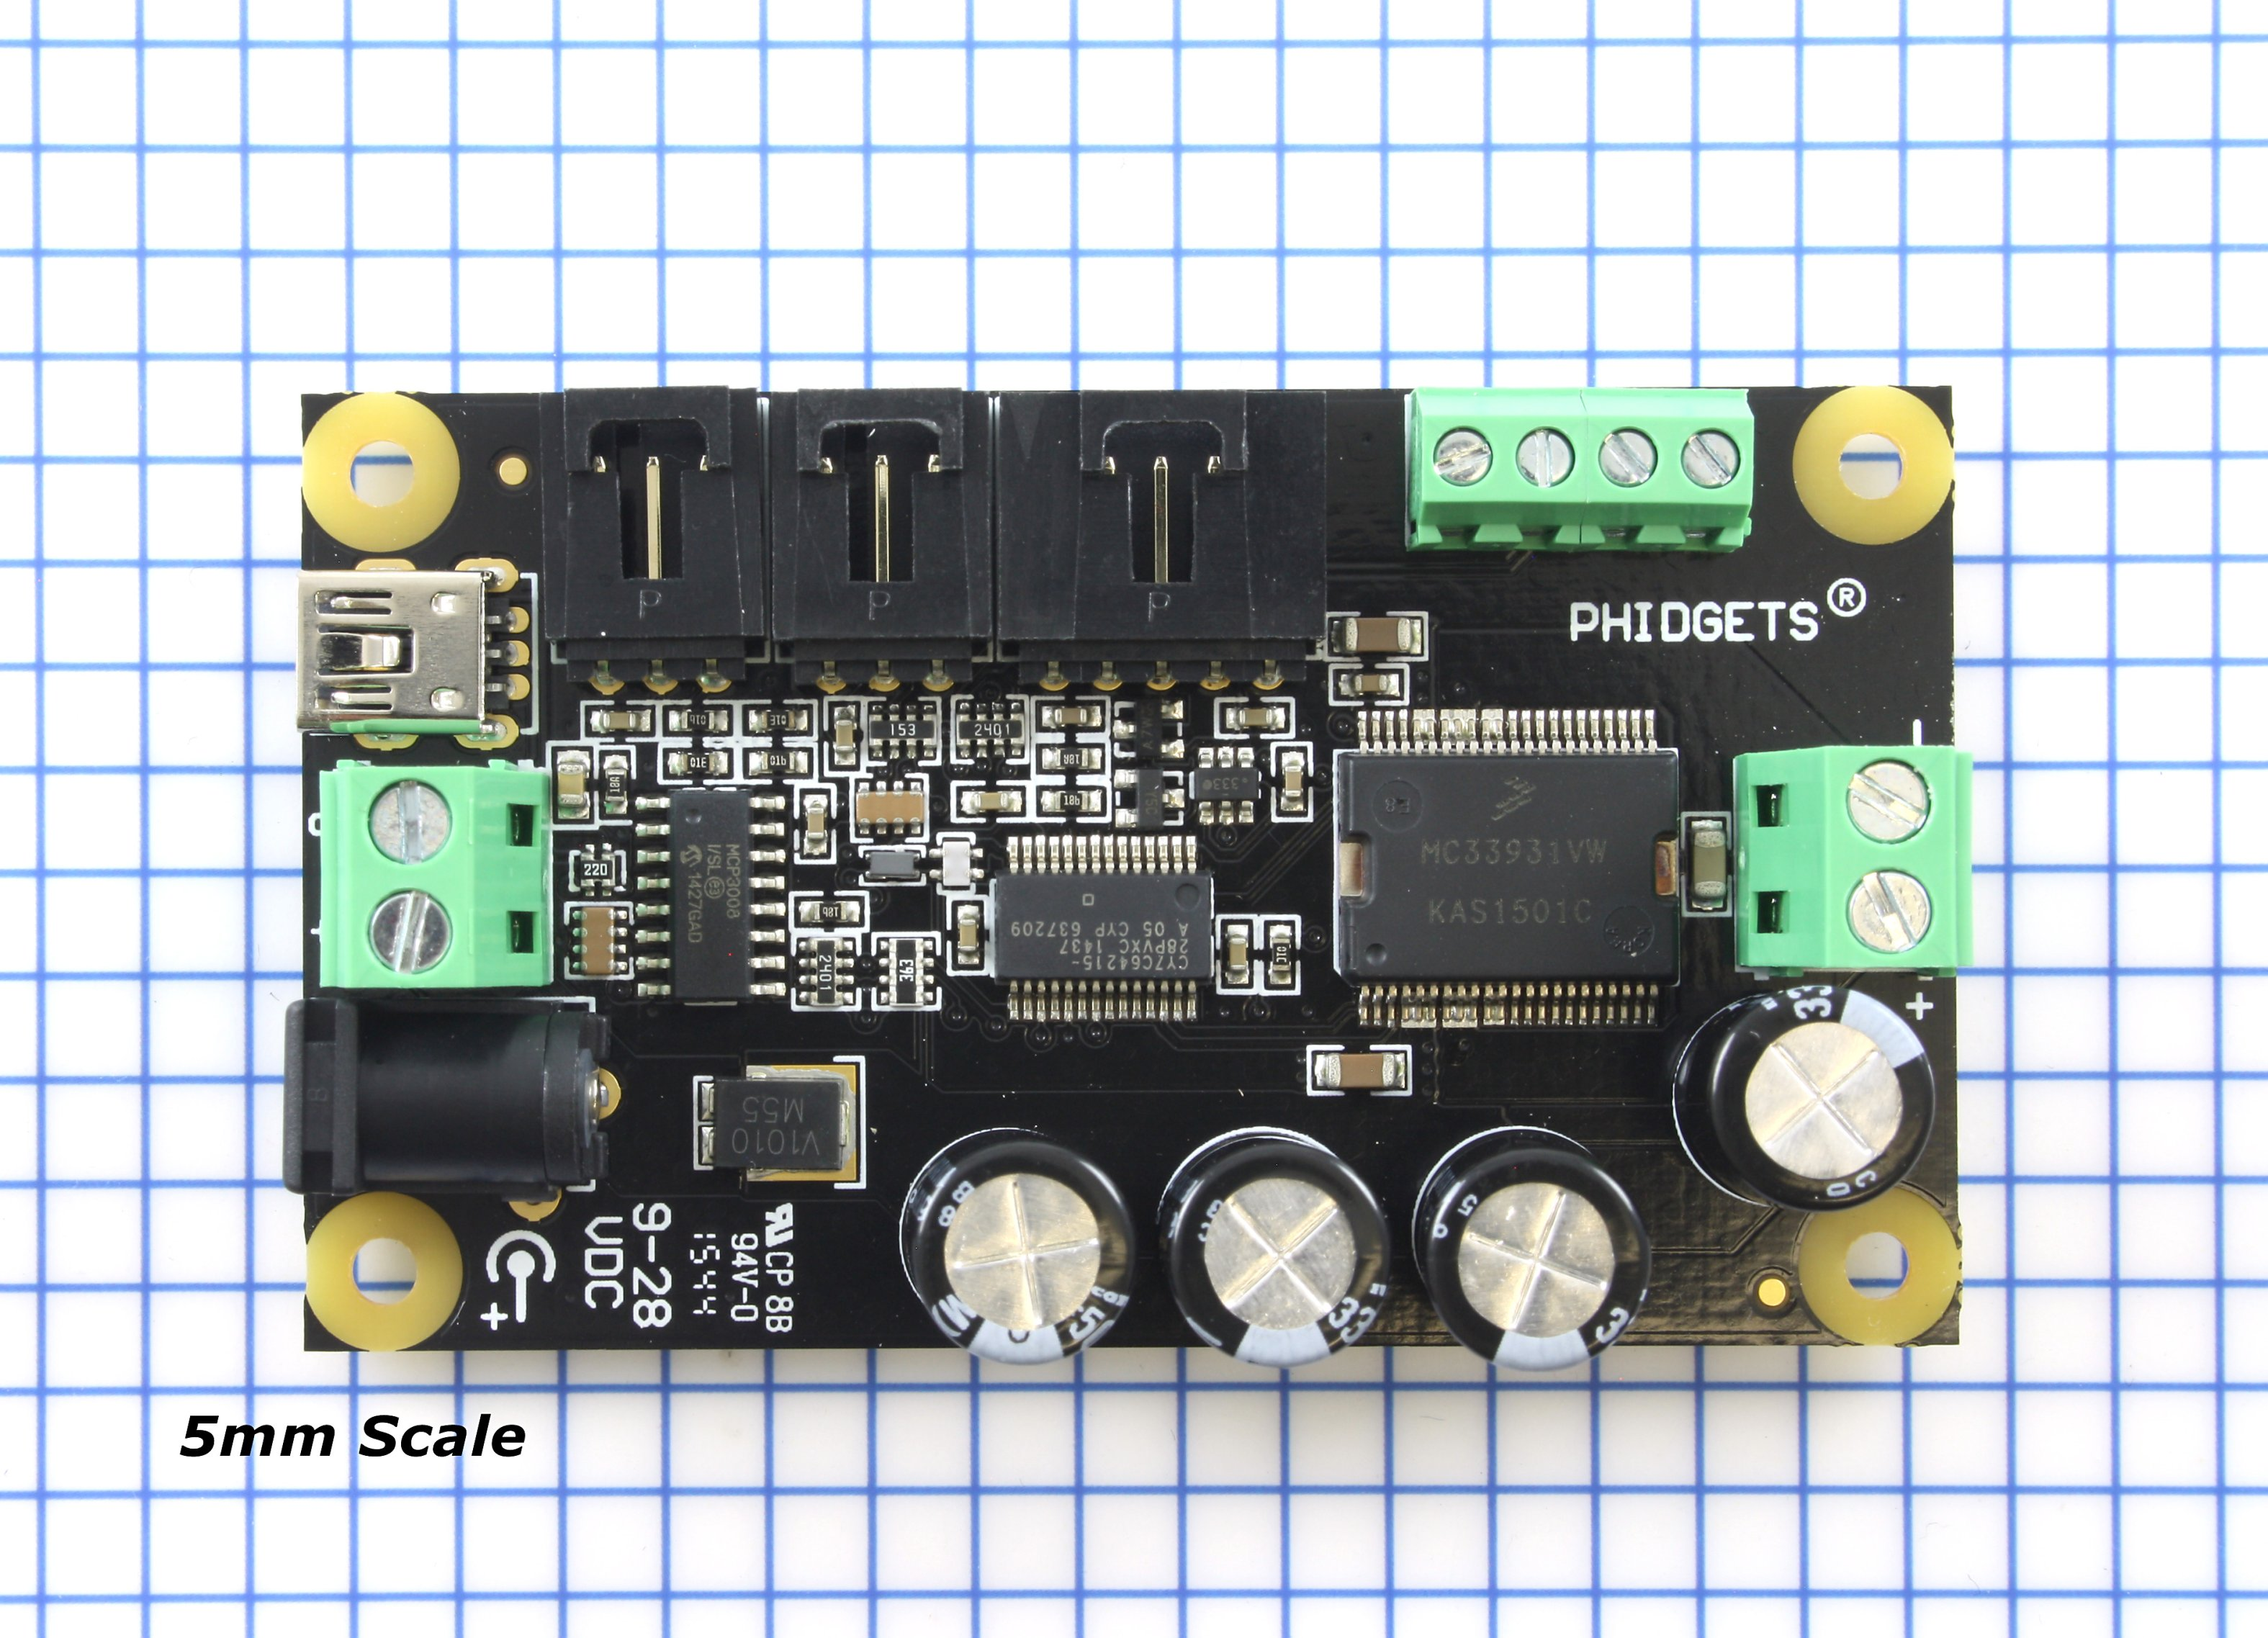 Phidgetmotorcontrol 1 Motor 1065 0 At Phidgets Ac Fan Speed Control Electronics Forum Circuits Projects And Scale